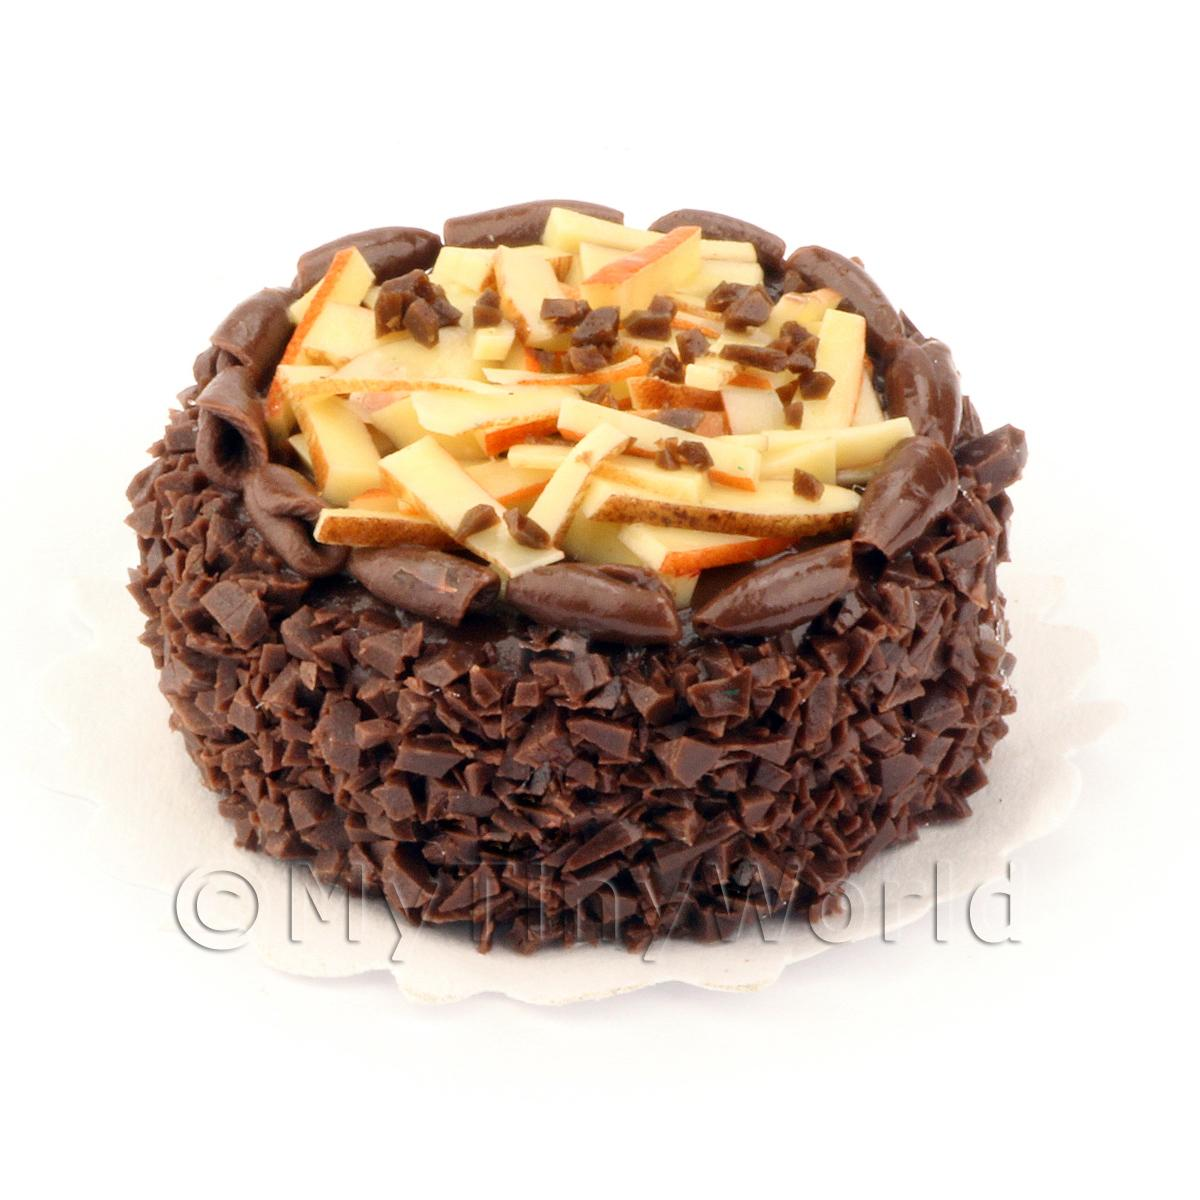 Dolls House Miniature Rich Double Chocolate Cake